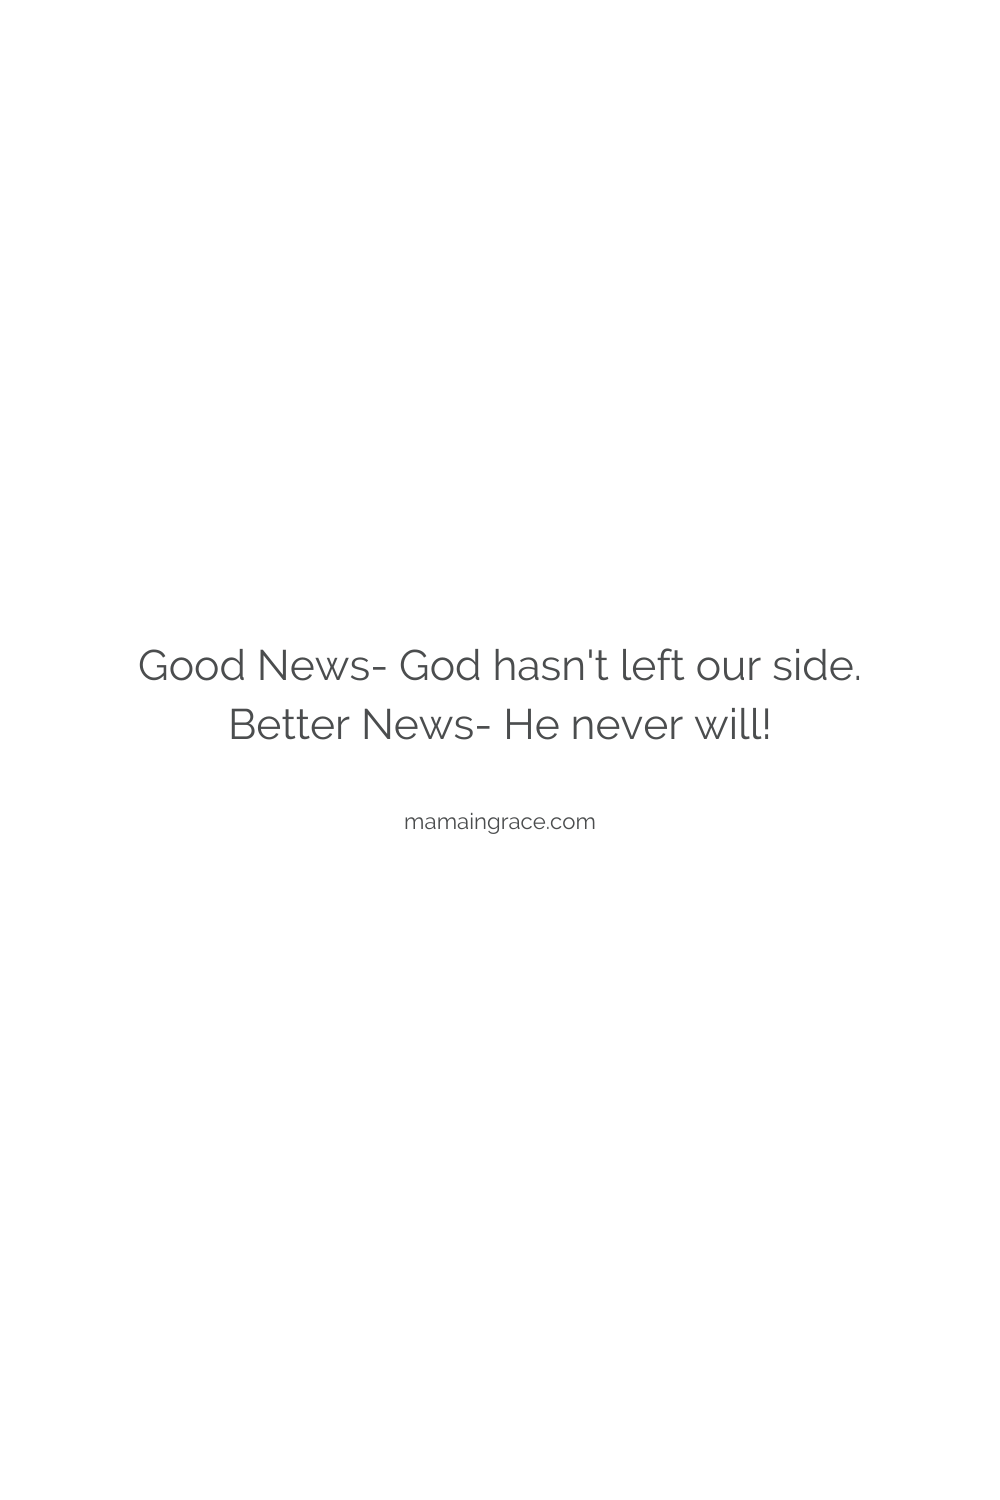 god will never leave us